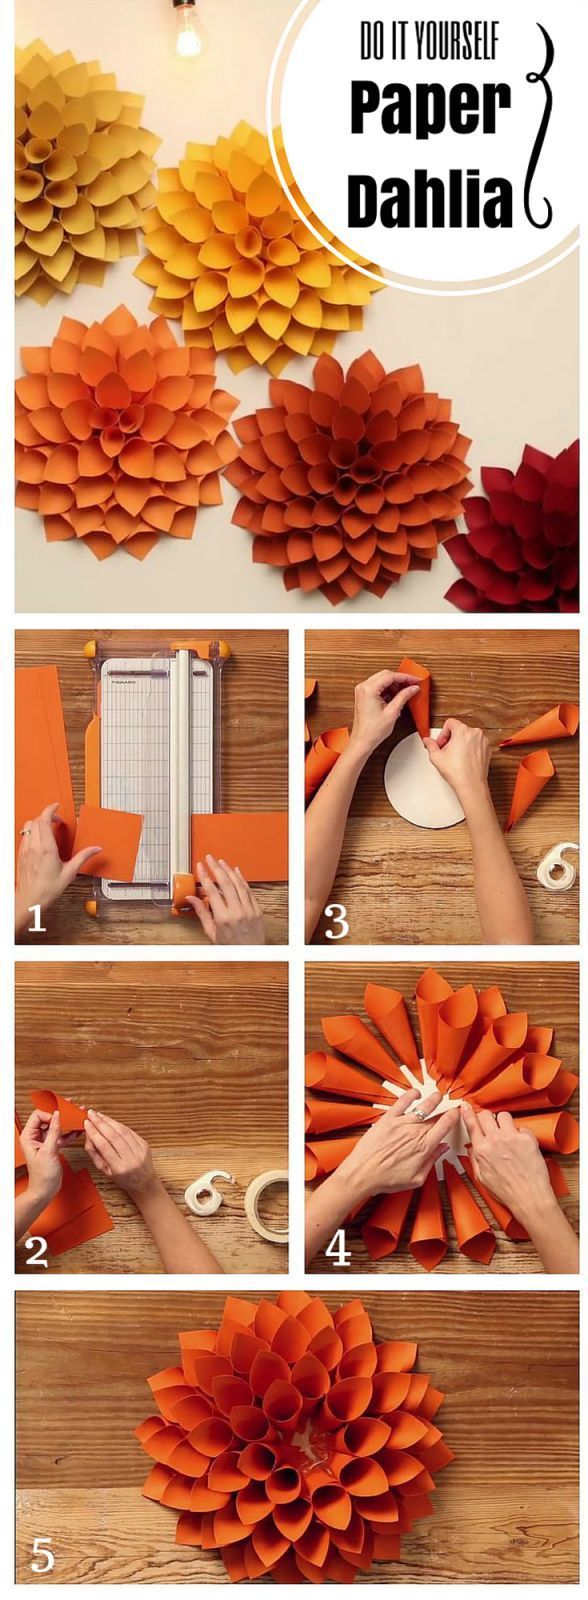 DIY Paper Dahlia – The Oversized Paper Version of the Beloved Spring Flower